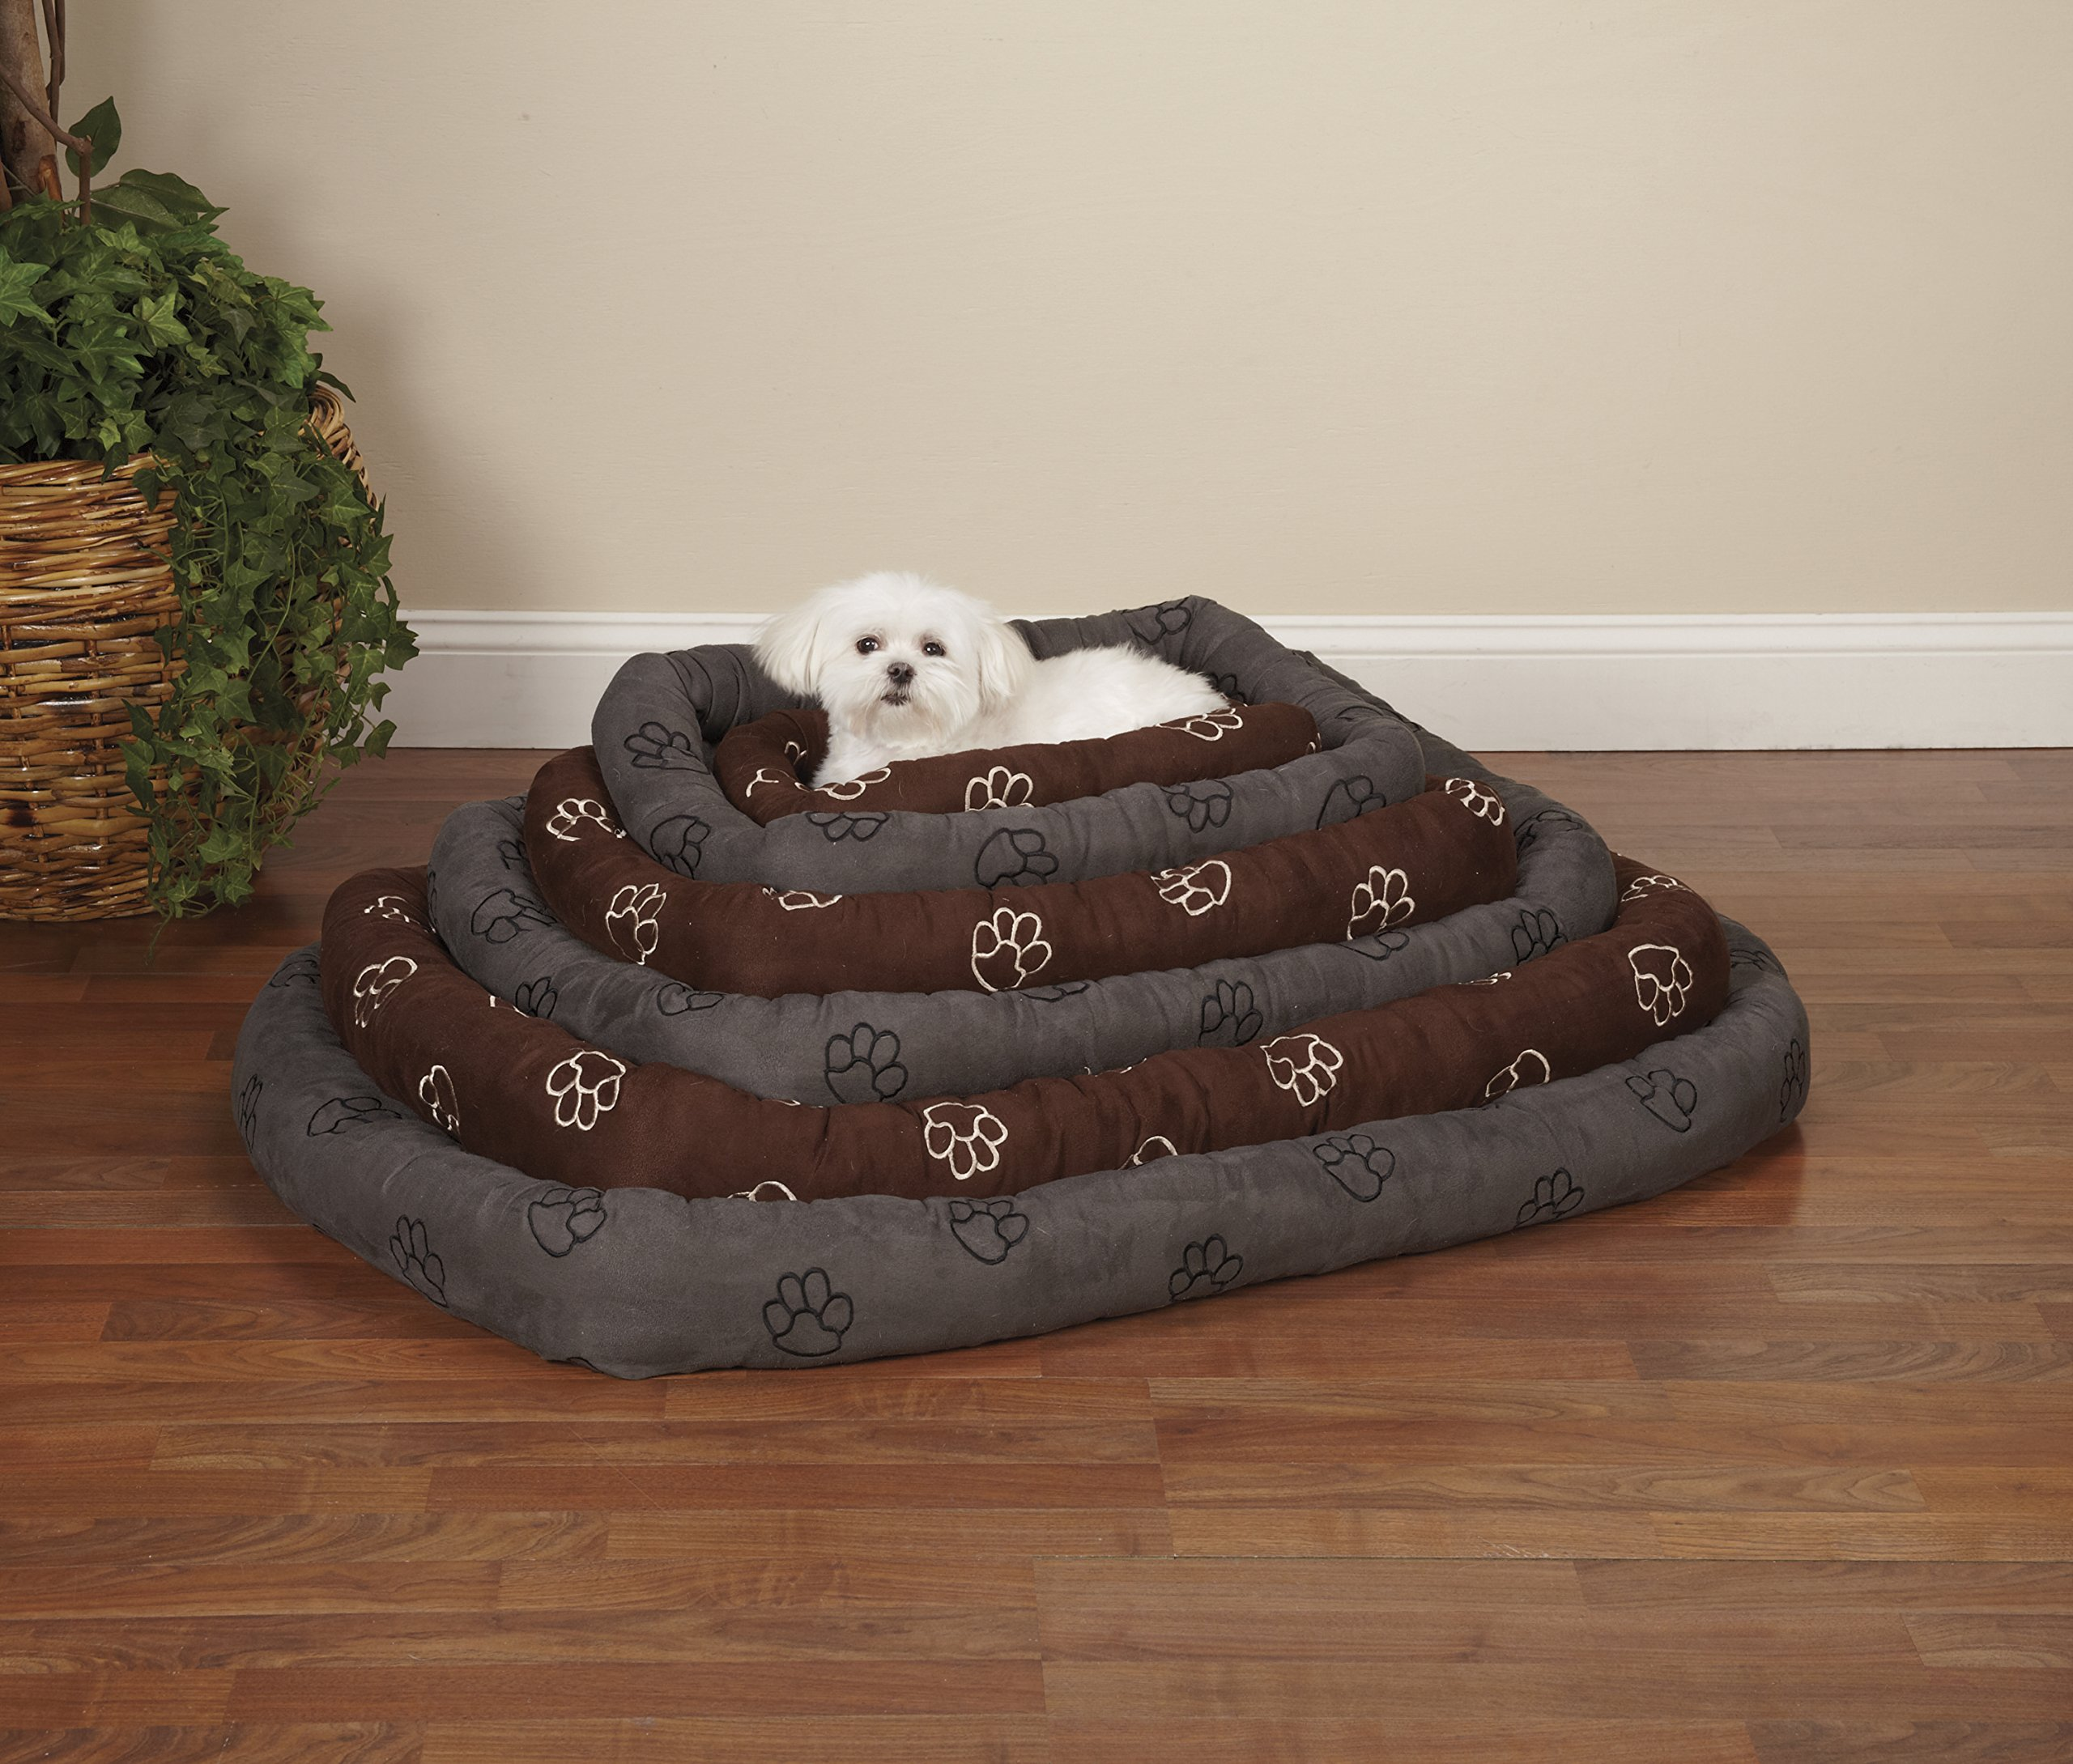 Slumber Pet Embroidered Pawprint Crate Beds - Soft and Extra-Durable Beds for Dogs and Cats - Medium/Large, 353/4'' L x 223/4'' W, Chocolate by Slumber Pet (Image #2)